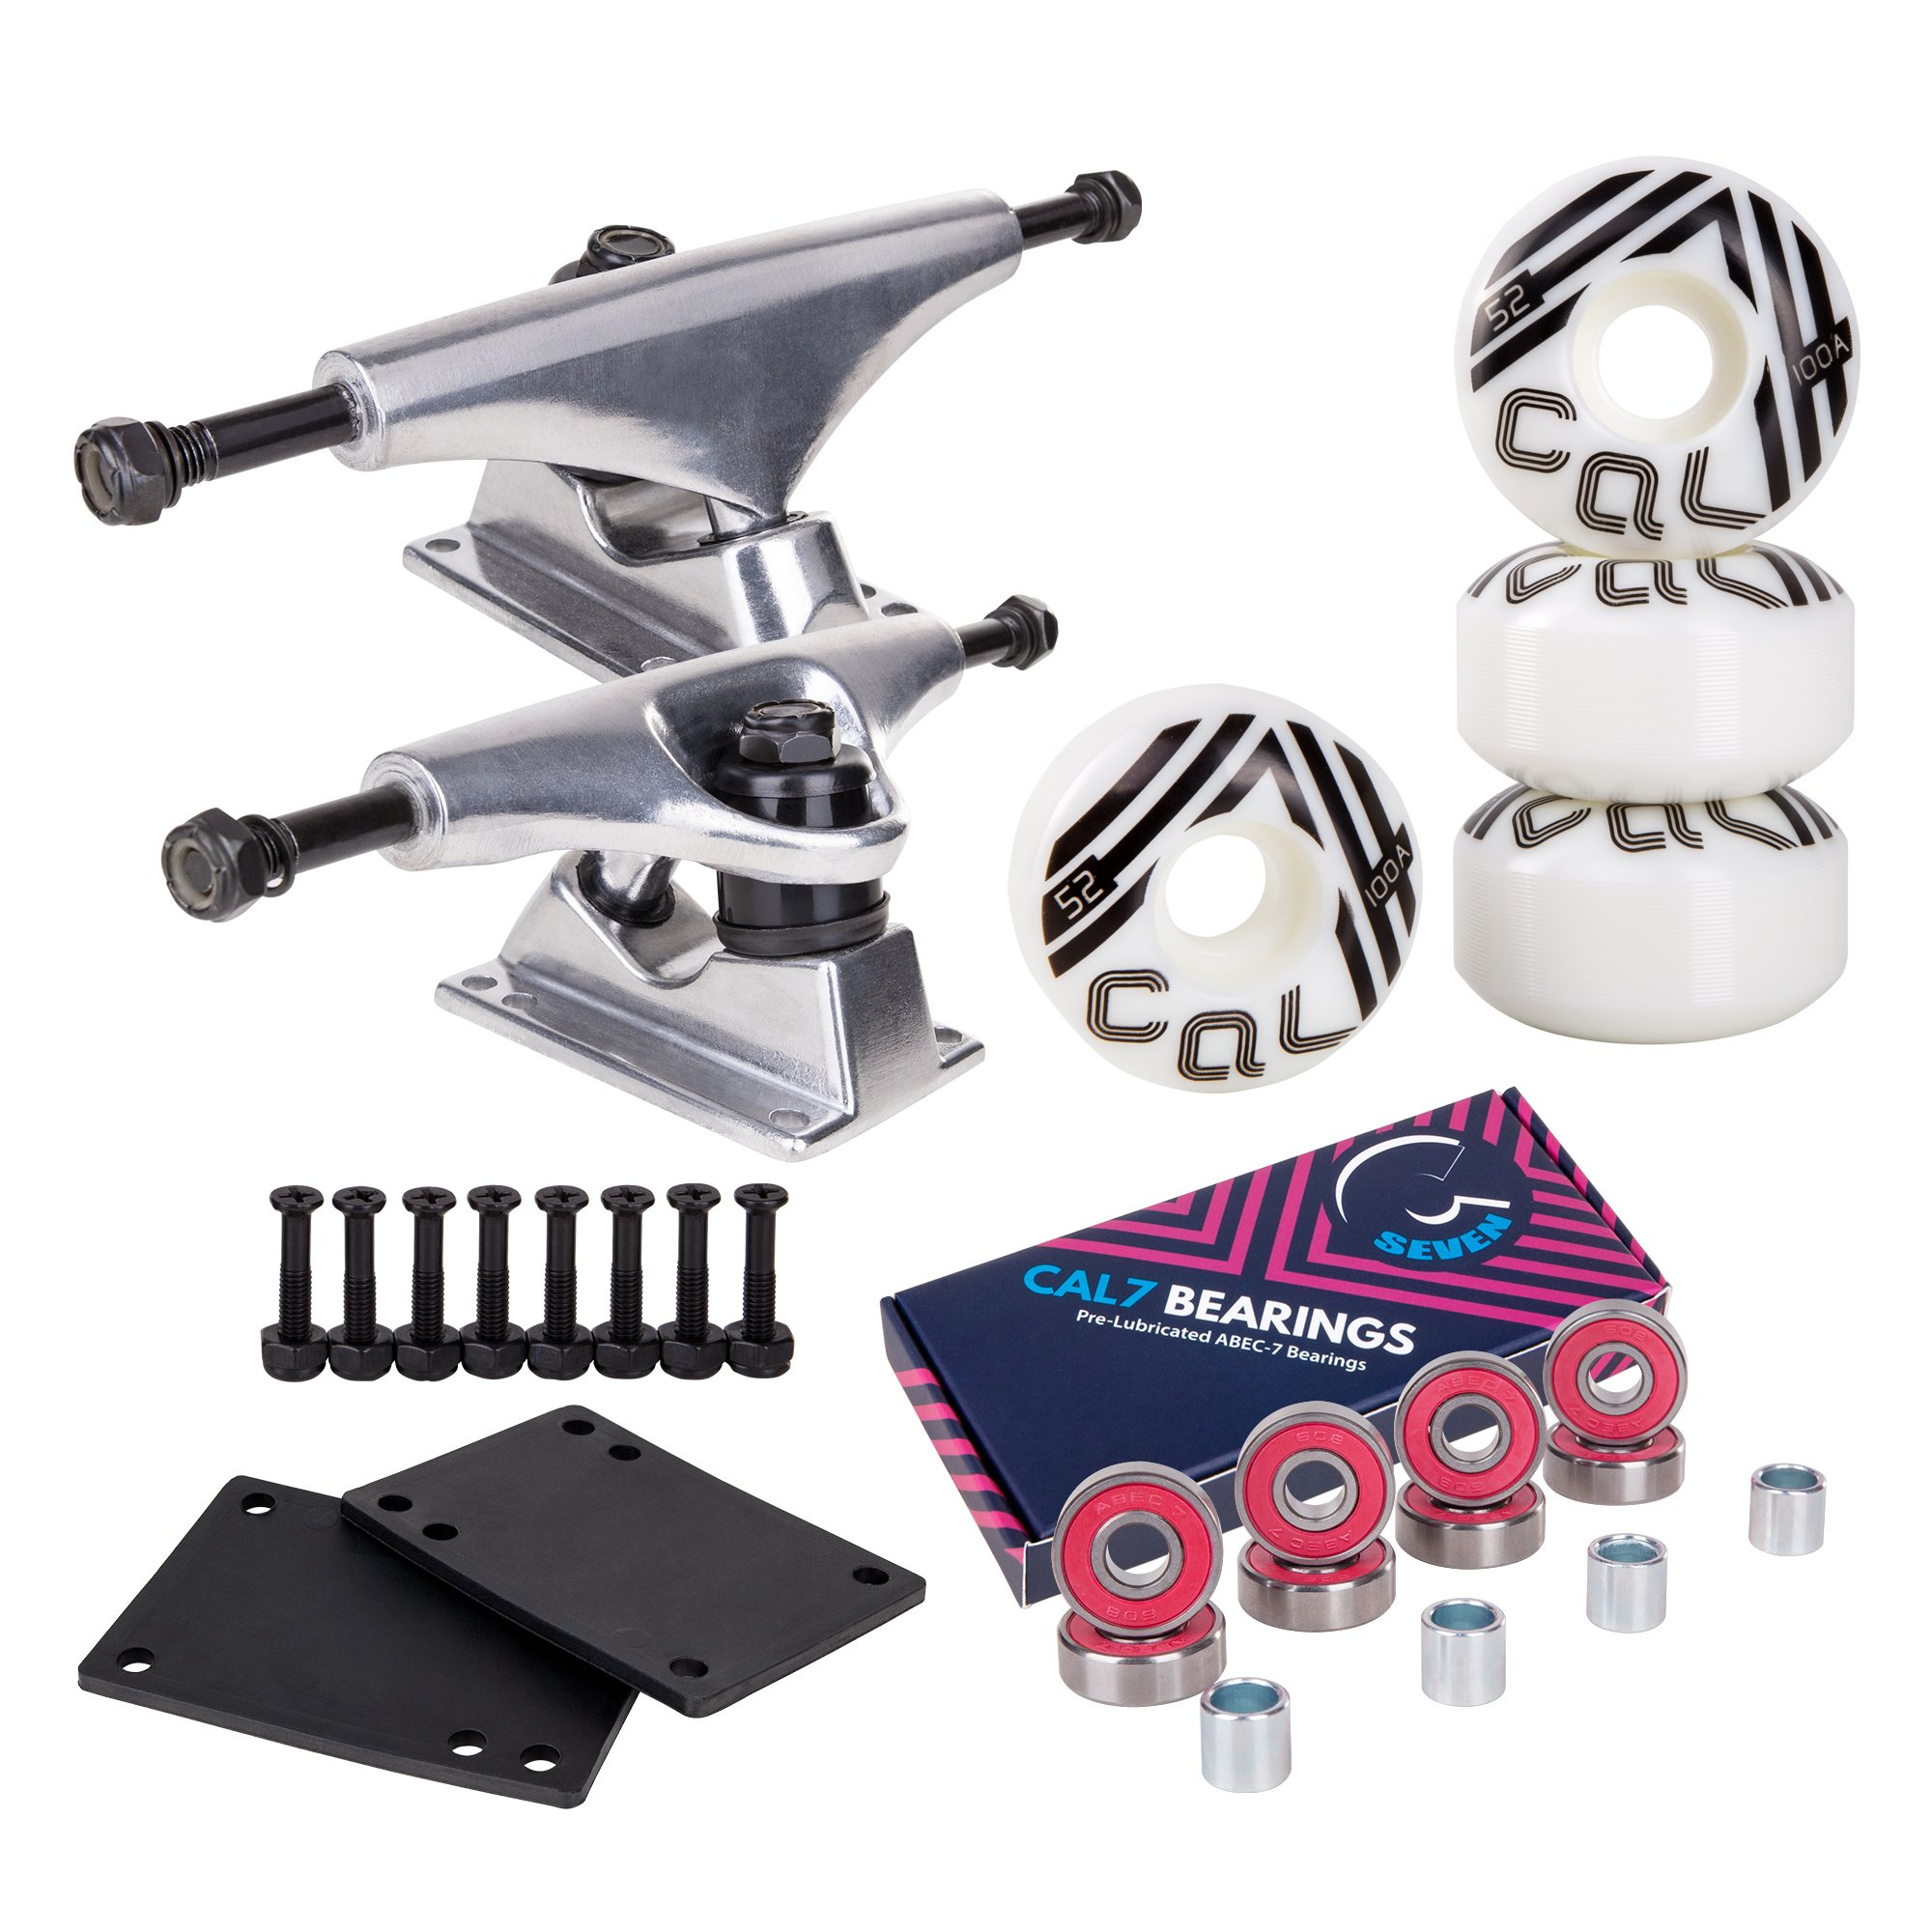 Cal 7 Skateboard Package | Complete Combo Set with 139 Millimeter / 5.25 Inch Aluminum Trucks, 52mm 99A Wheels & Bearings (Silver Truck + White Retro Wheels) by Cal 7